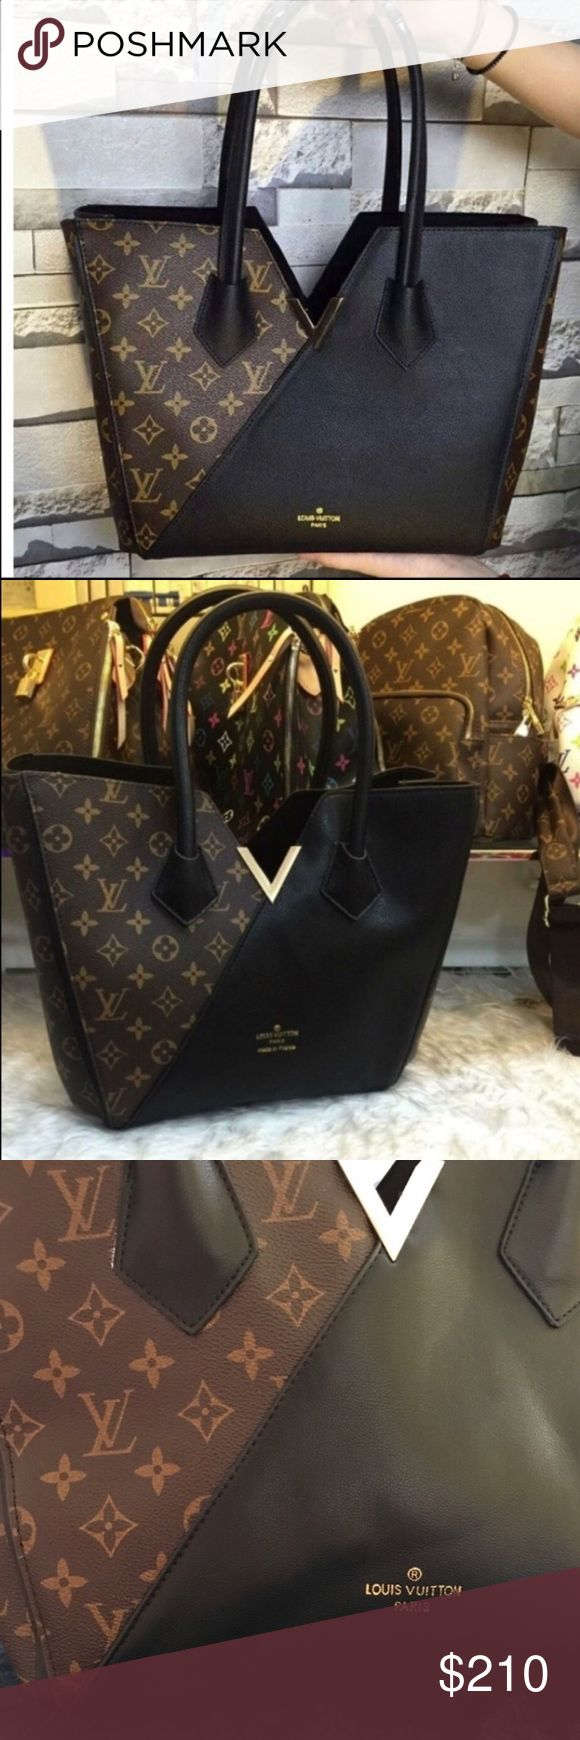 Louis vuitton Kimono large purse accept reasonable offers.                                                          15.4 x 11.4 x 5.9 inches  (Length x Height x Width)  - Monogram canvas - 1 central zipped compartment - Transversal snap hook as closing system - Golden color metallic pieces - 4 bottom studs Louis Vuitton Bags Satchels